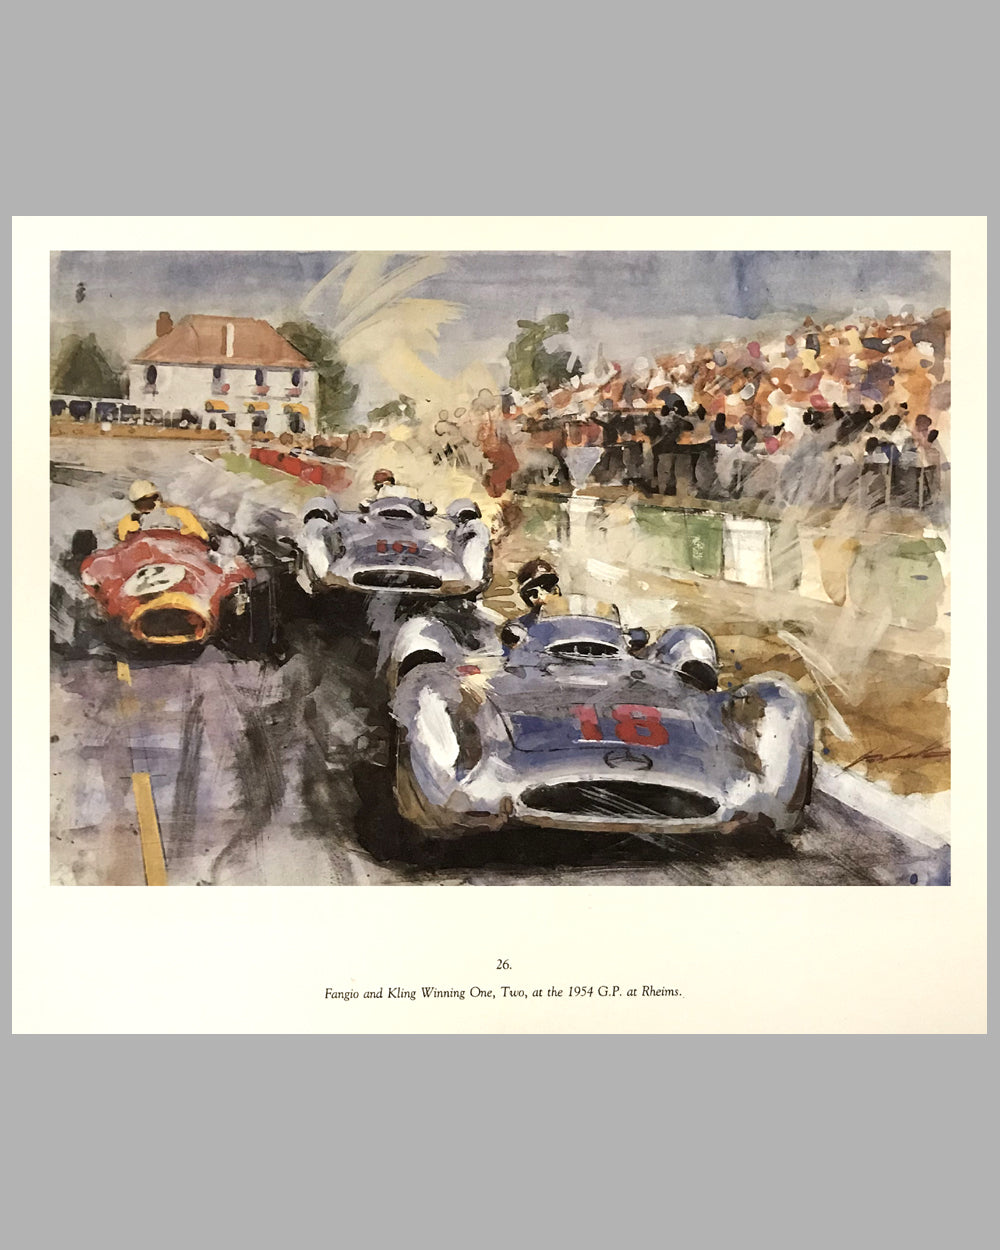 1954 Grand Prix of France in Reims print by Walter Gotschke